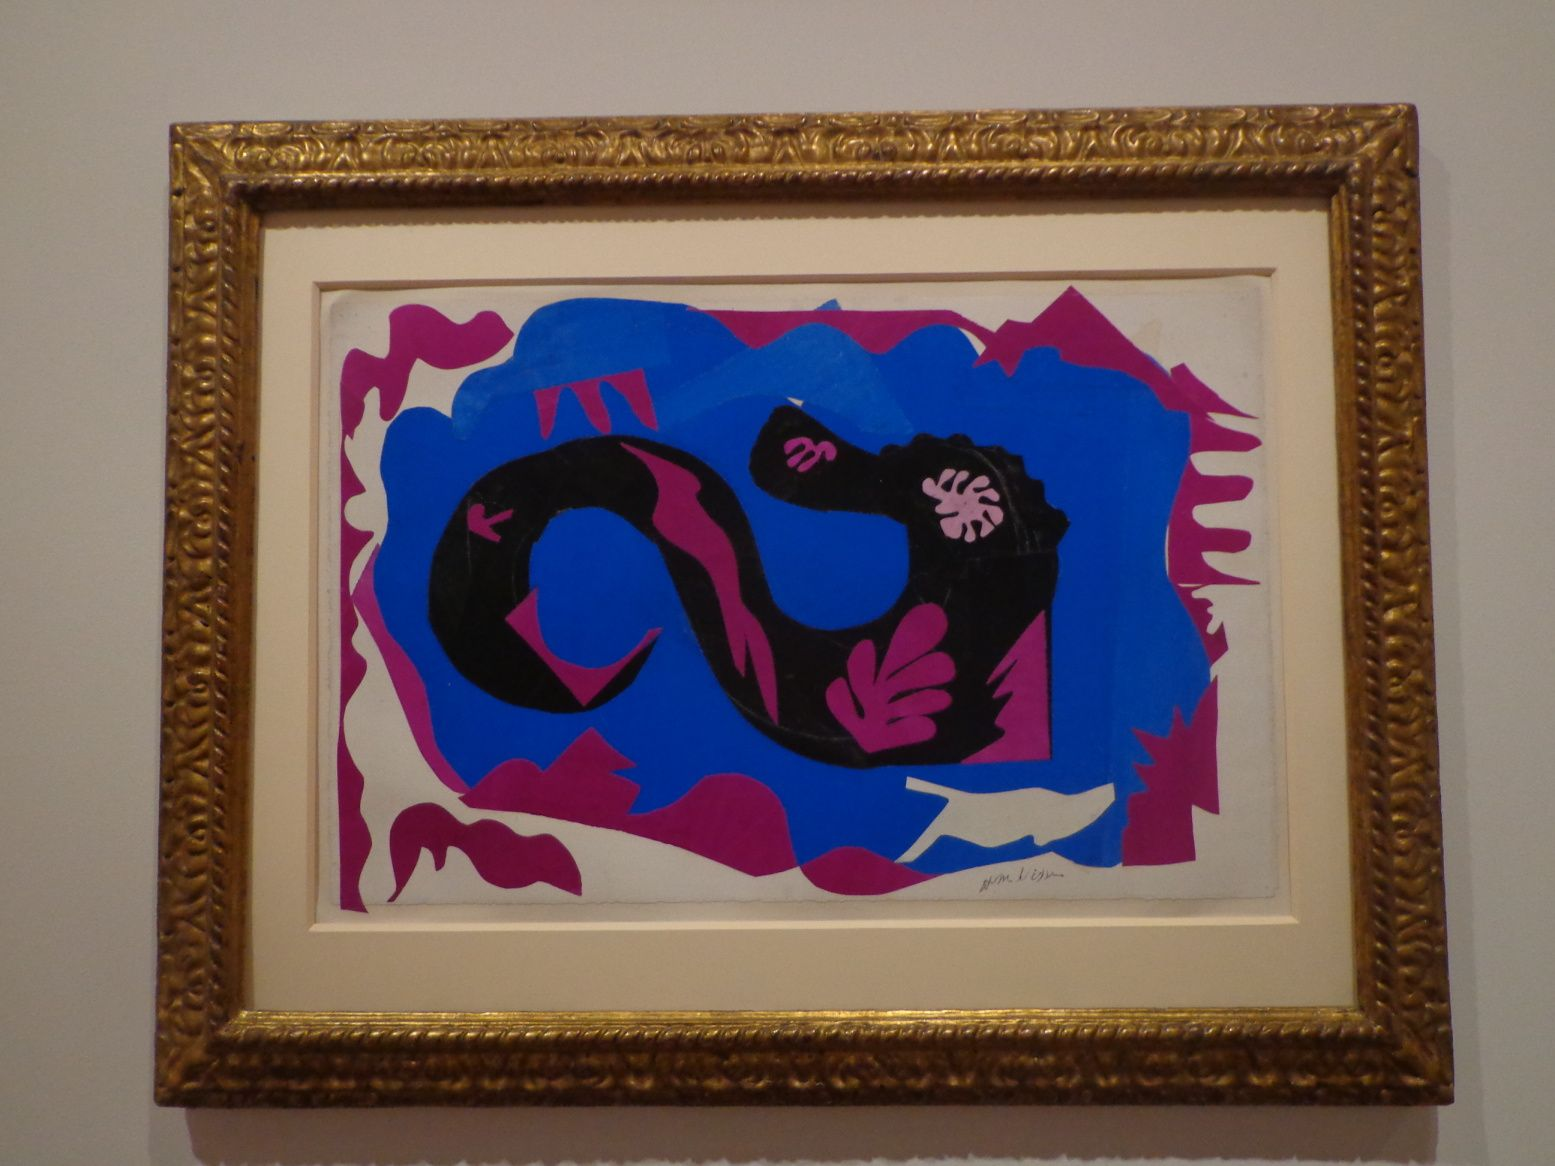 Le dragon - Collage -  Henri Matisse, 1944